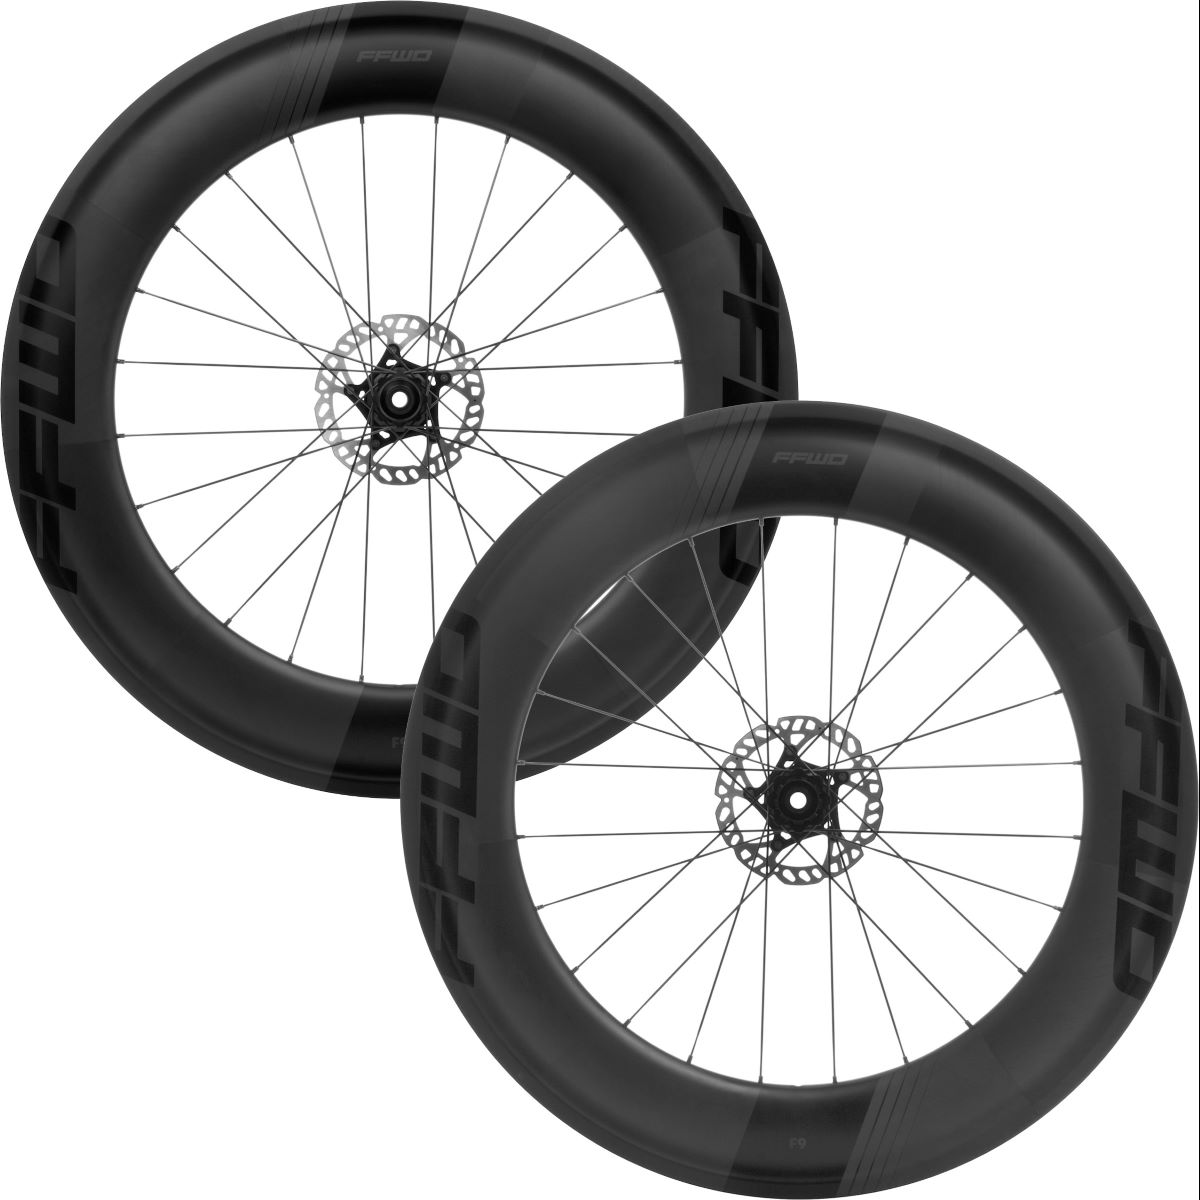 Fast Forward Fast Forward F9D DT240 Carbon Road Wheelset   Wheel Sets